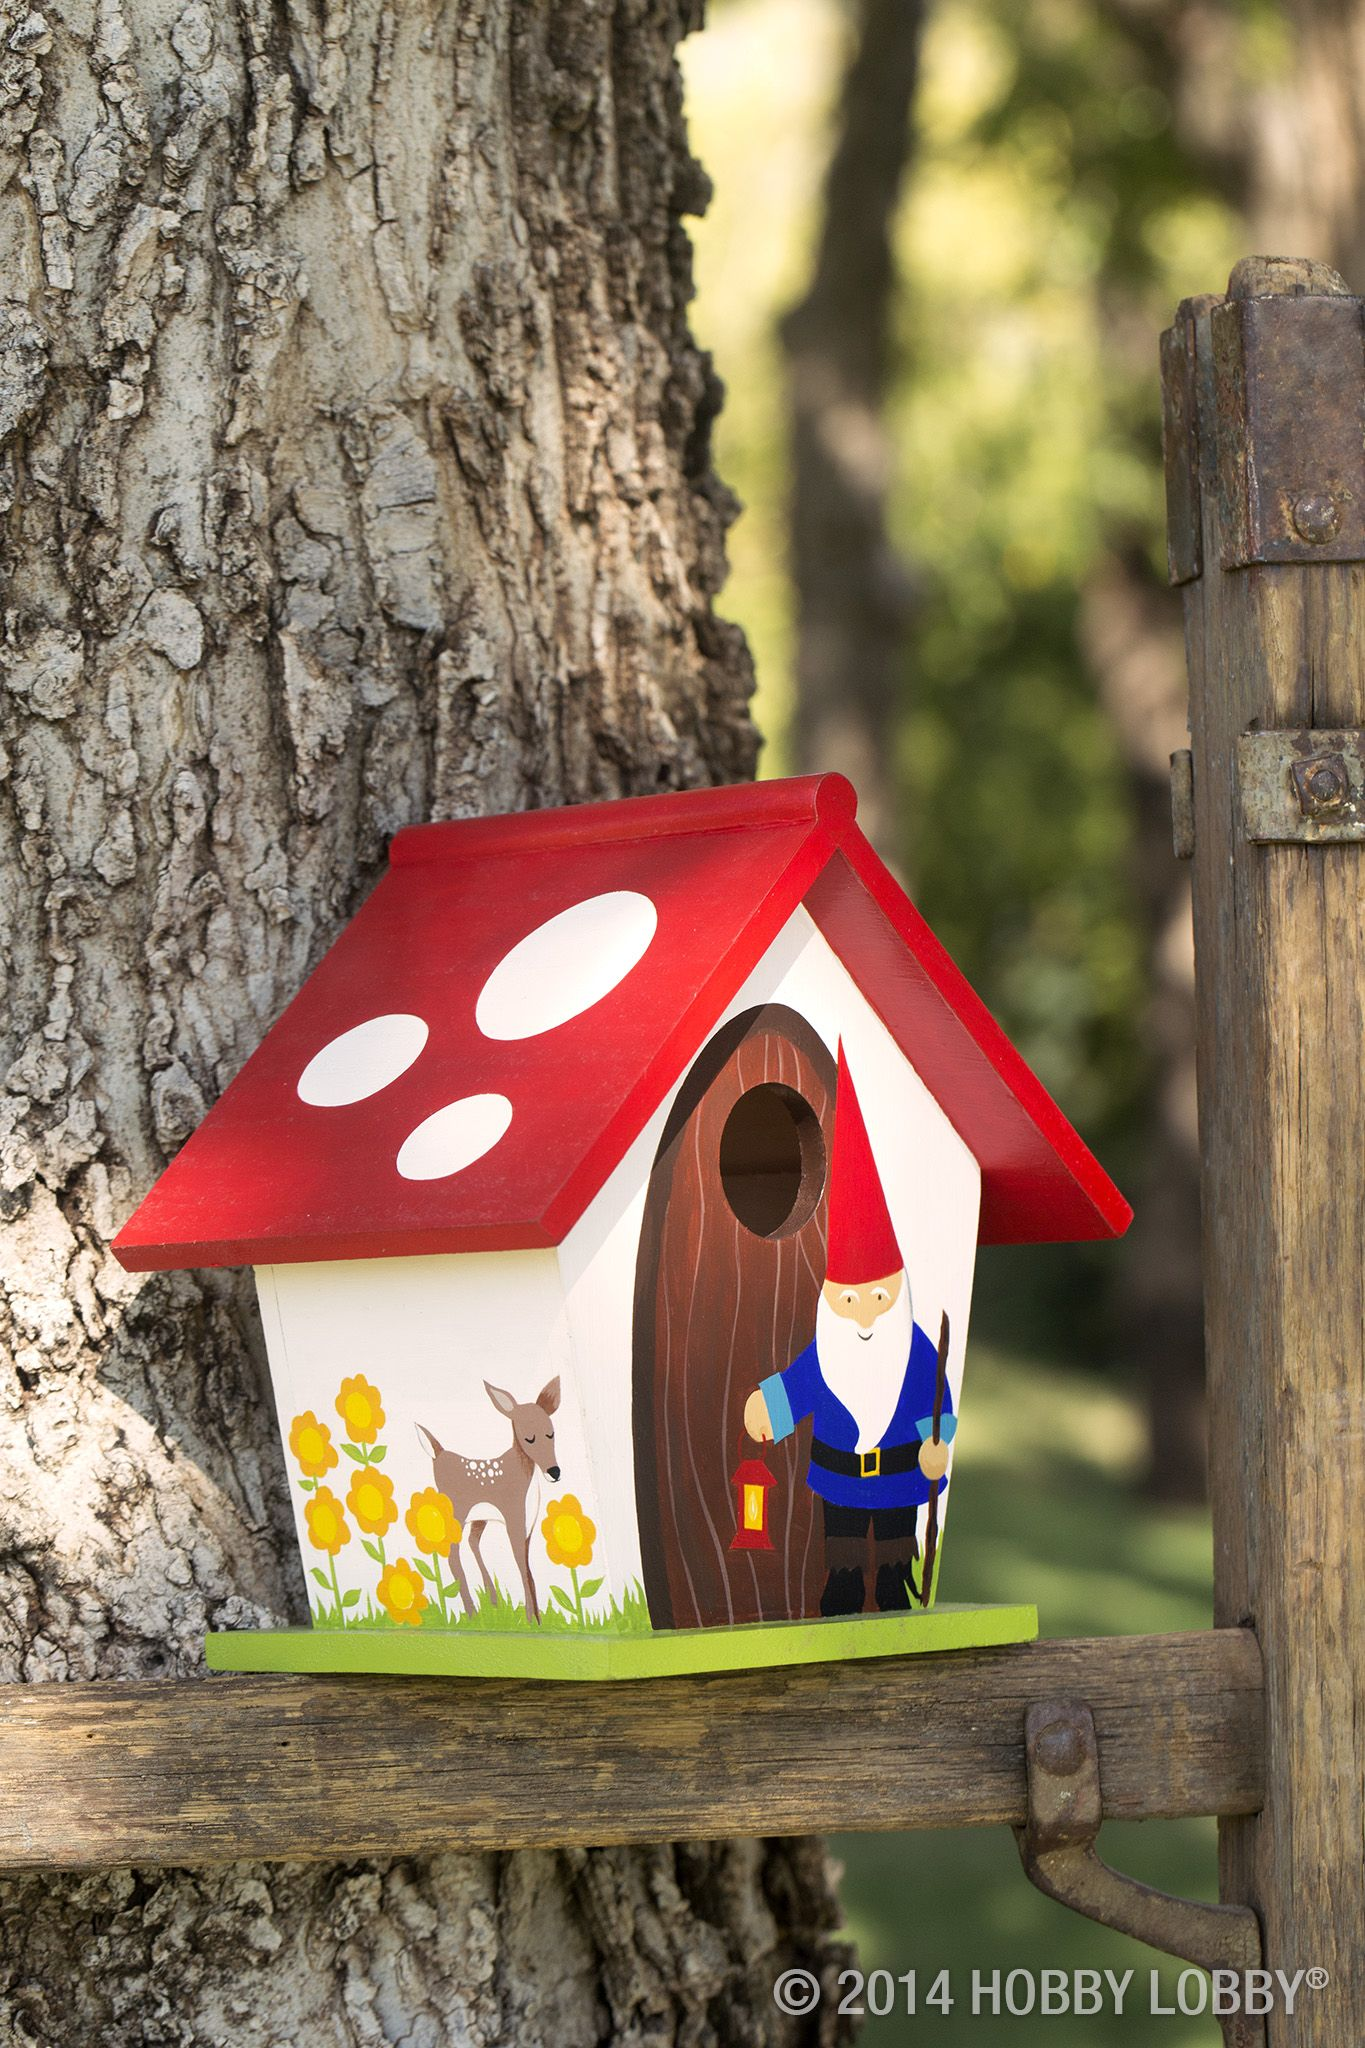 bd64d41df9aa96ab516d745560086312 Painted Bird House Watering Can Shape Designs on soda can bird house, clay pot bird house, beehive bird house, flower pot bird house, terra cotta pot bird house,